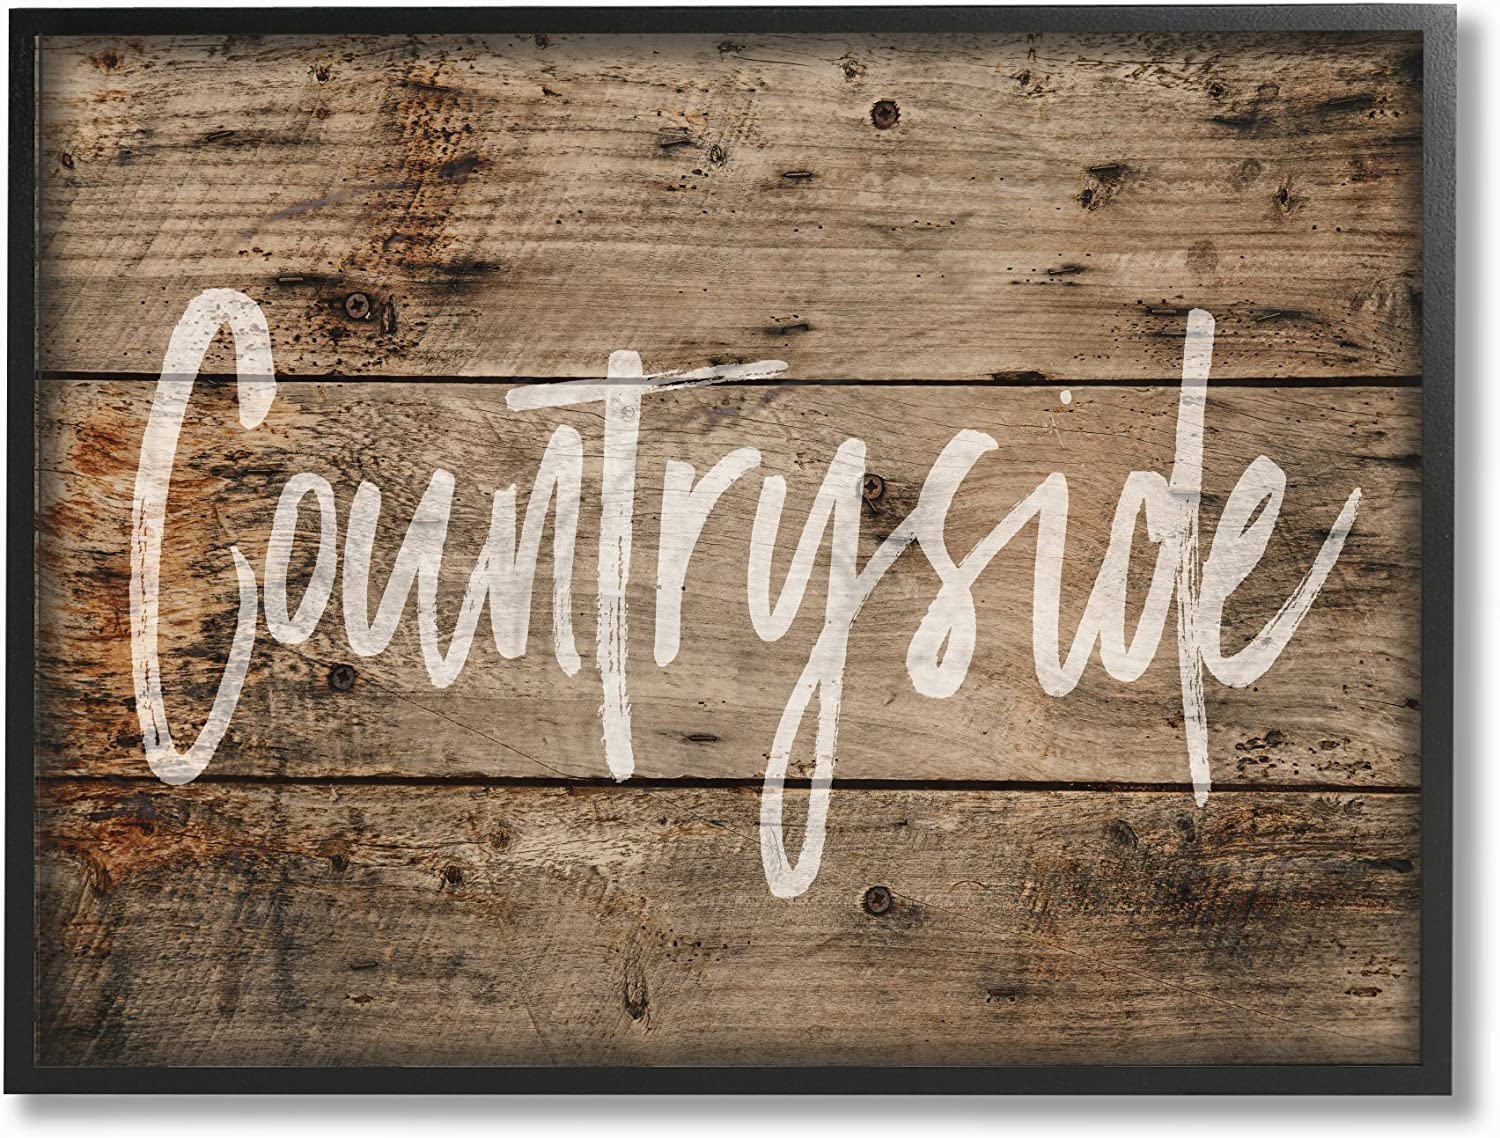 Stupell Industries mwp-350_fr_11x14 Countryside Distressed Plank Wood Look Framed Giclee Texturized Art